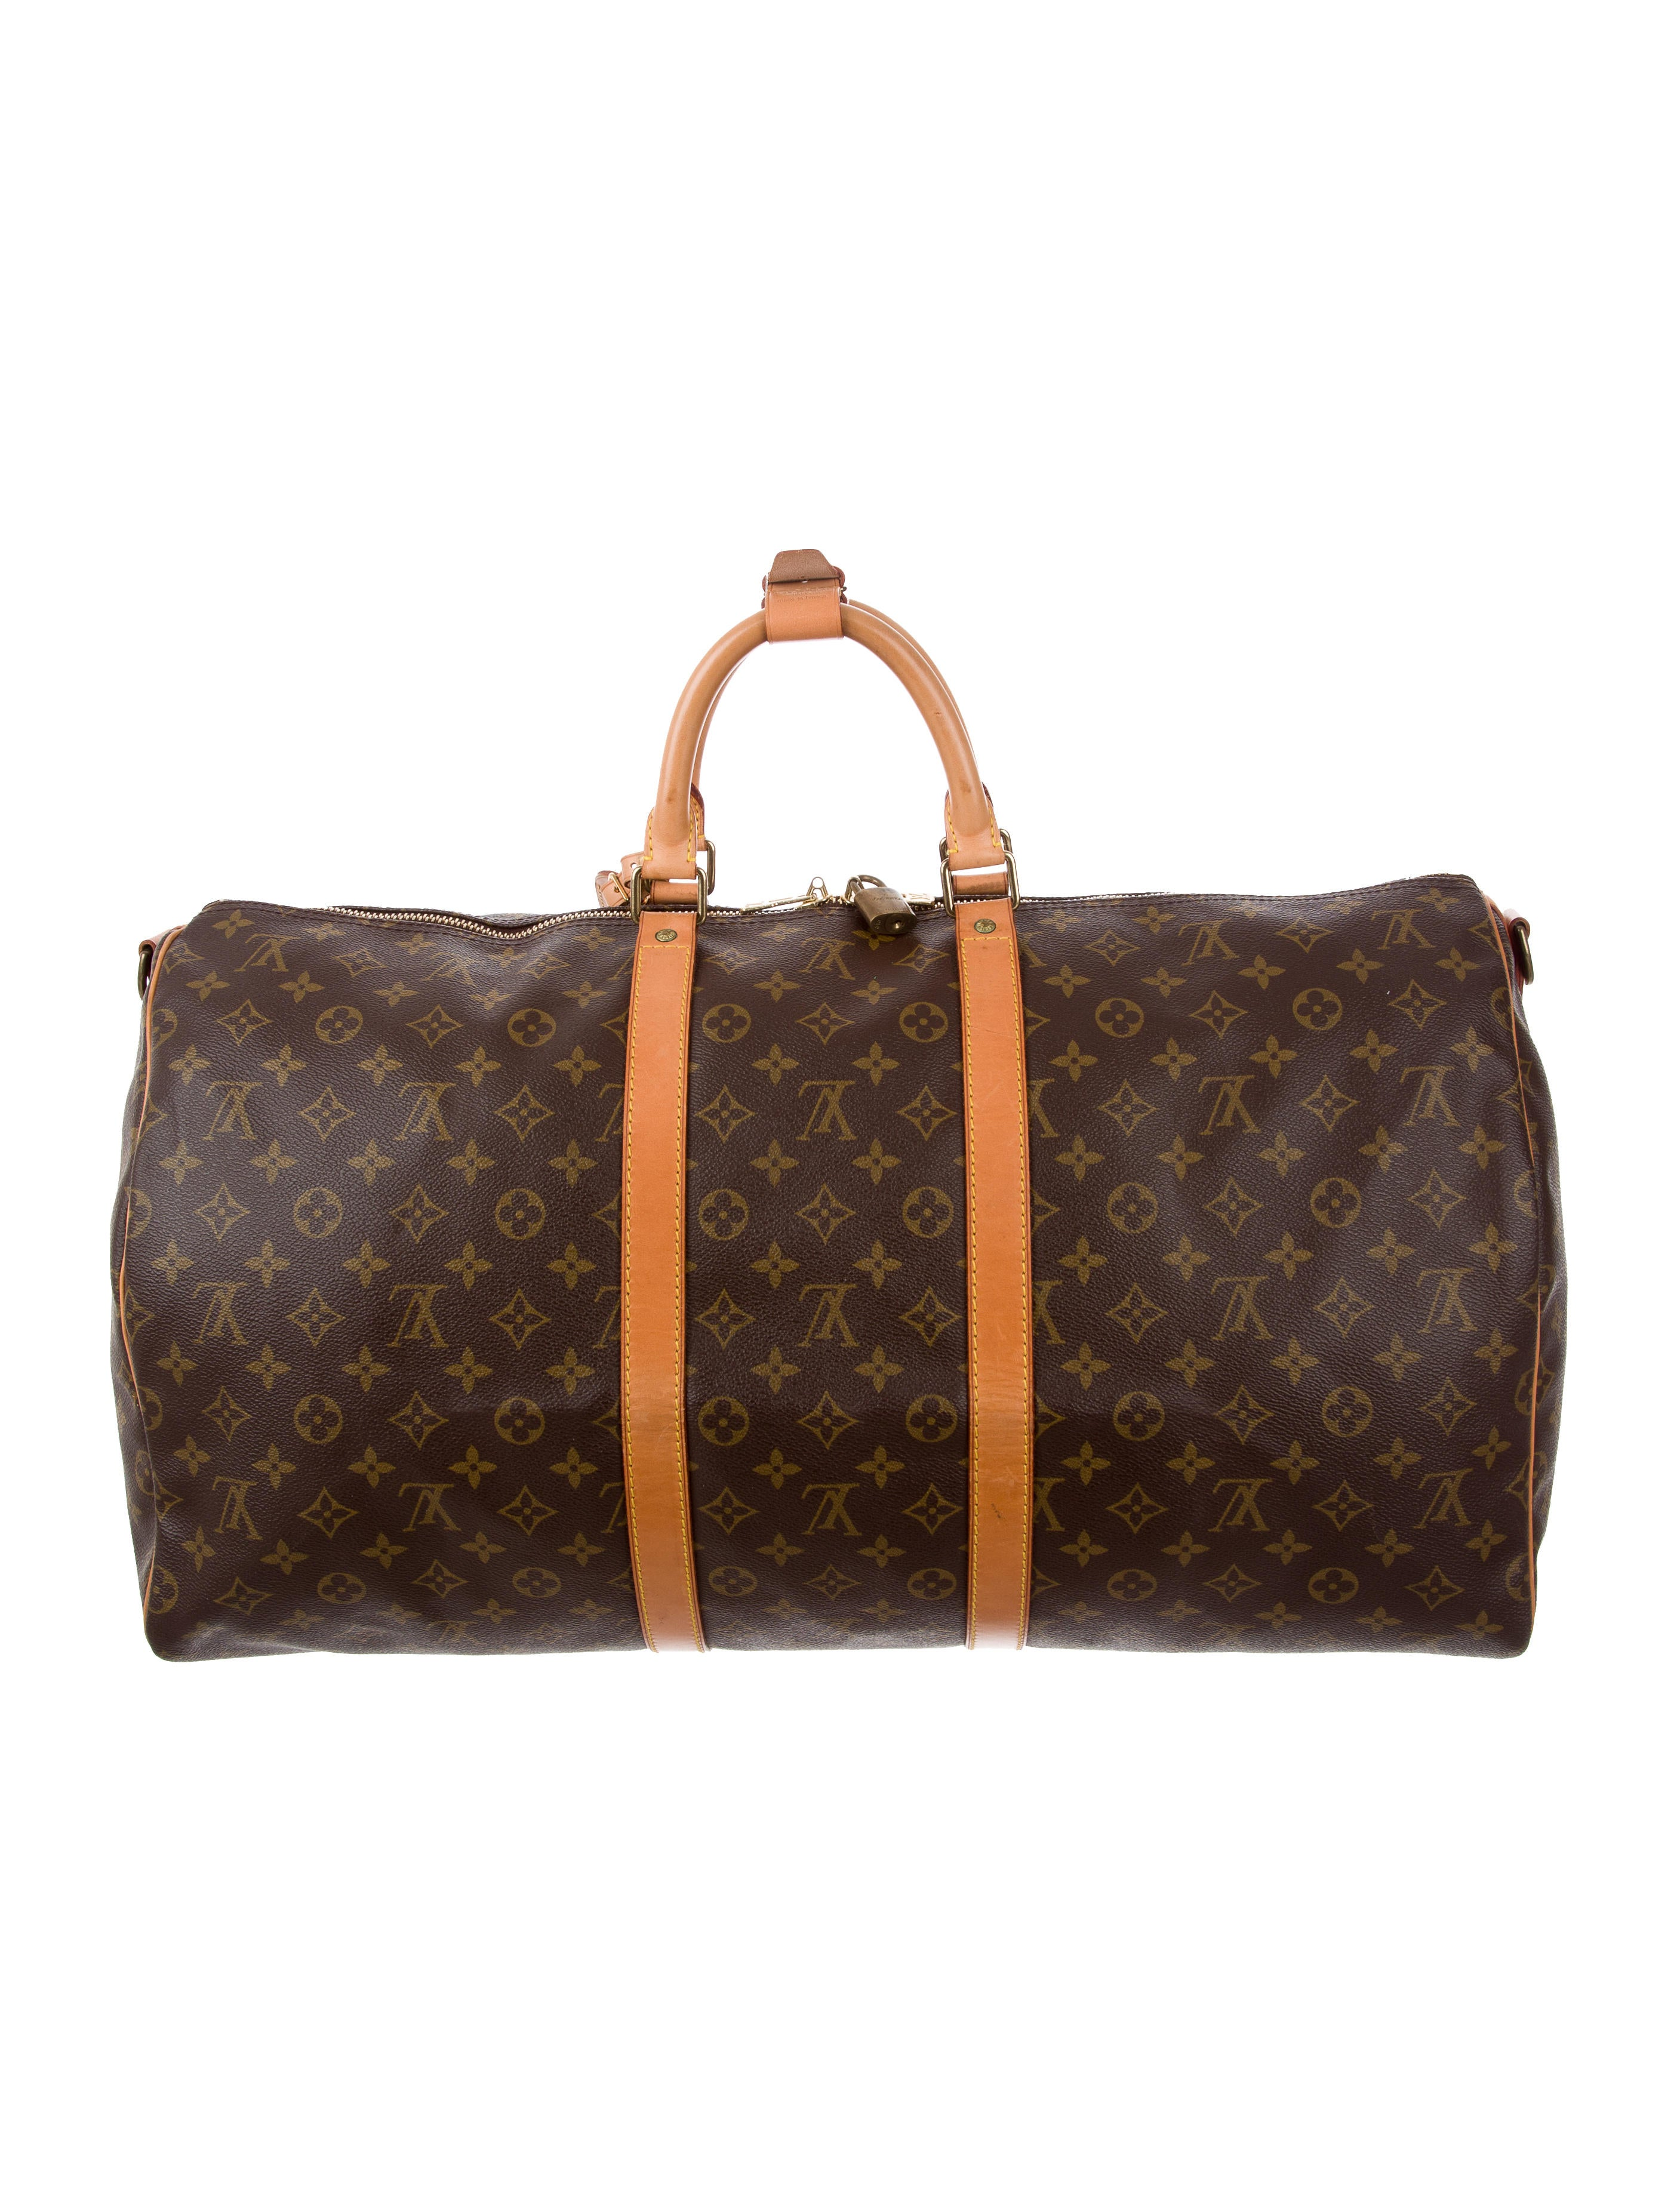 louis vuitton monogram keepall bandouli re 55 handbags lou129723 the realreal. Black Bedroom Furniture Sets. Home Design Ideas